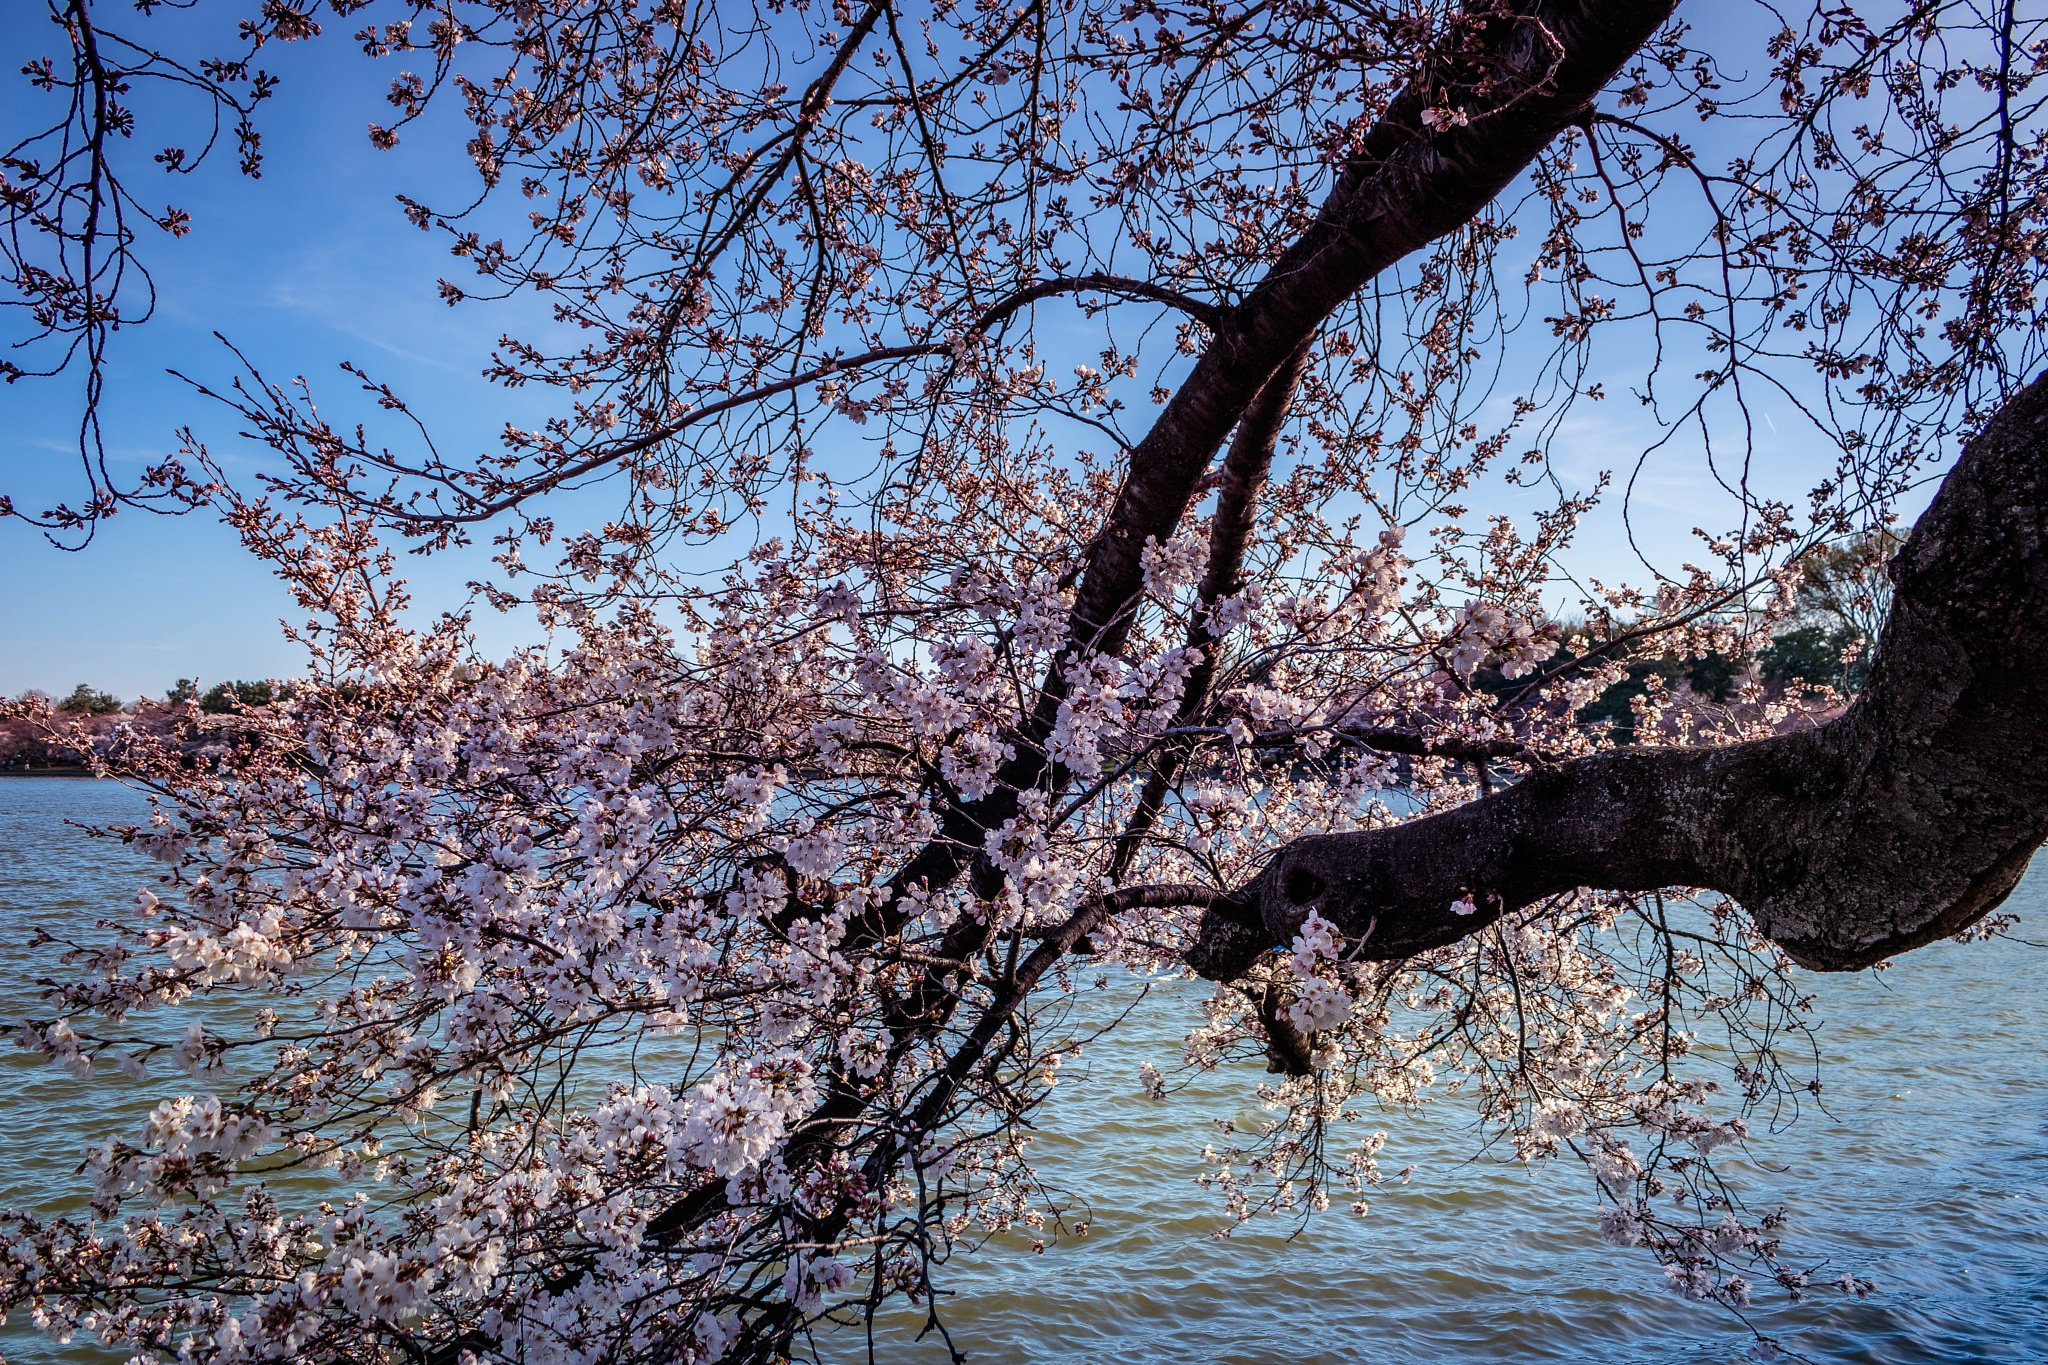 Cherry Blossoms over Water by drchad480